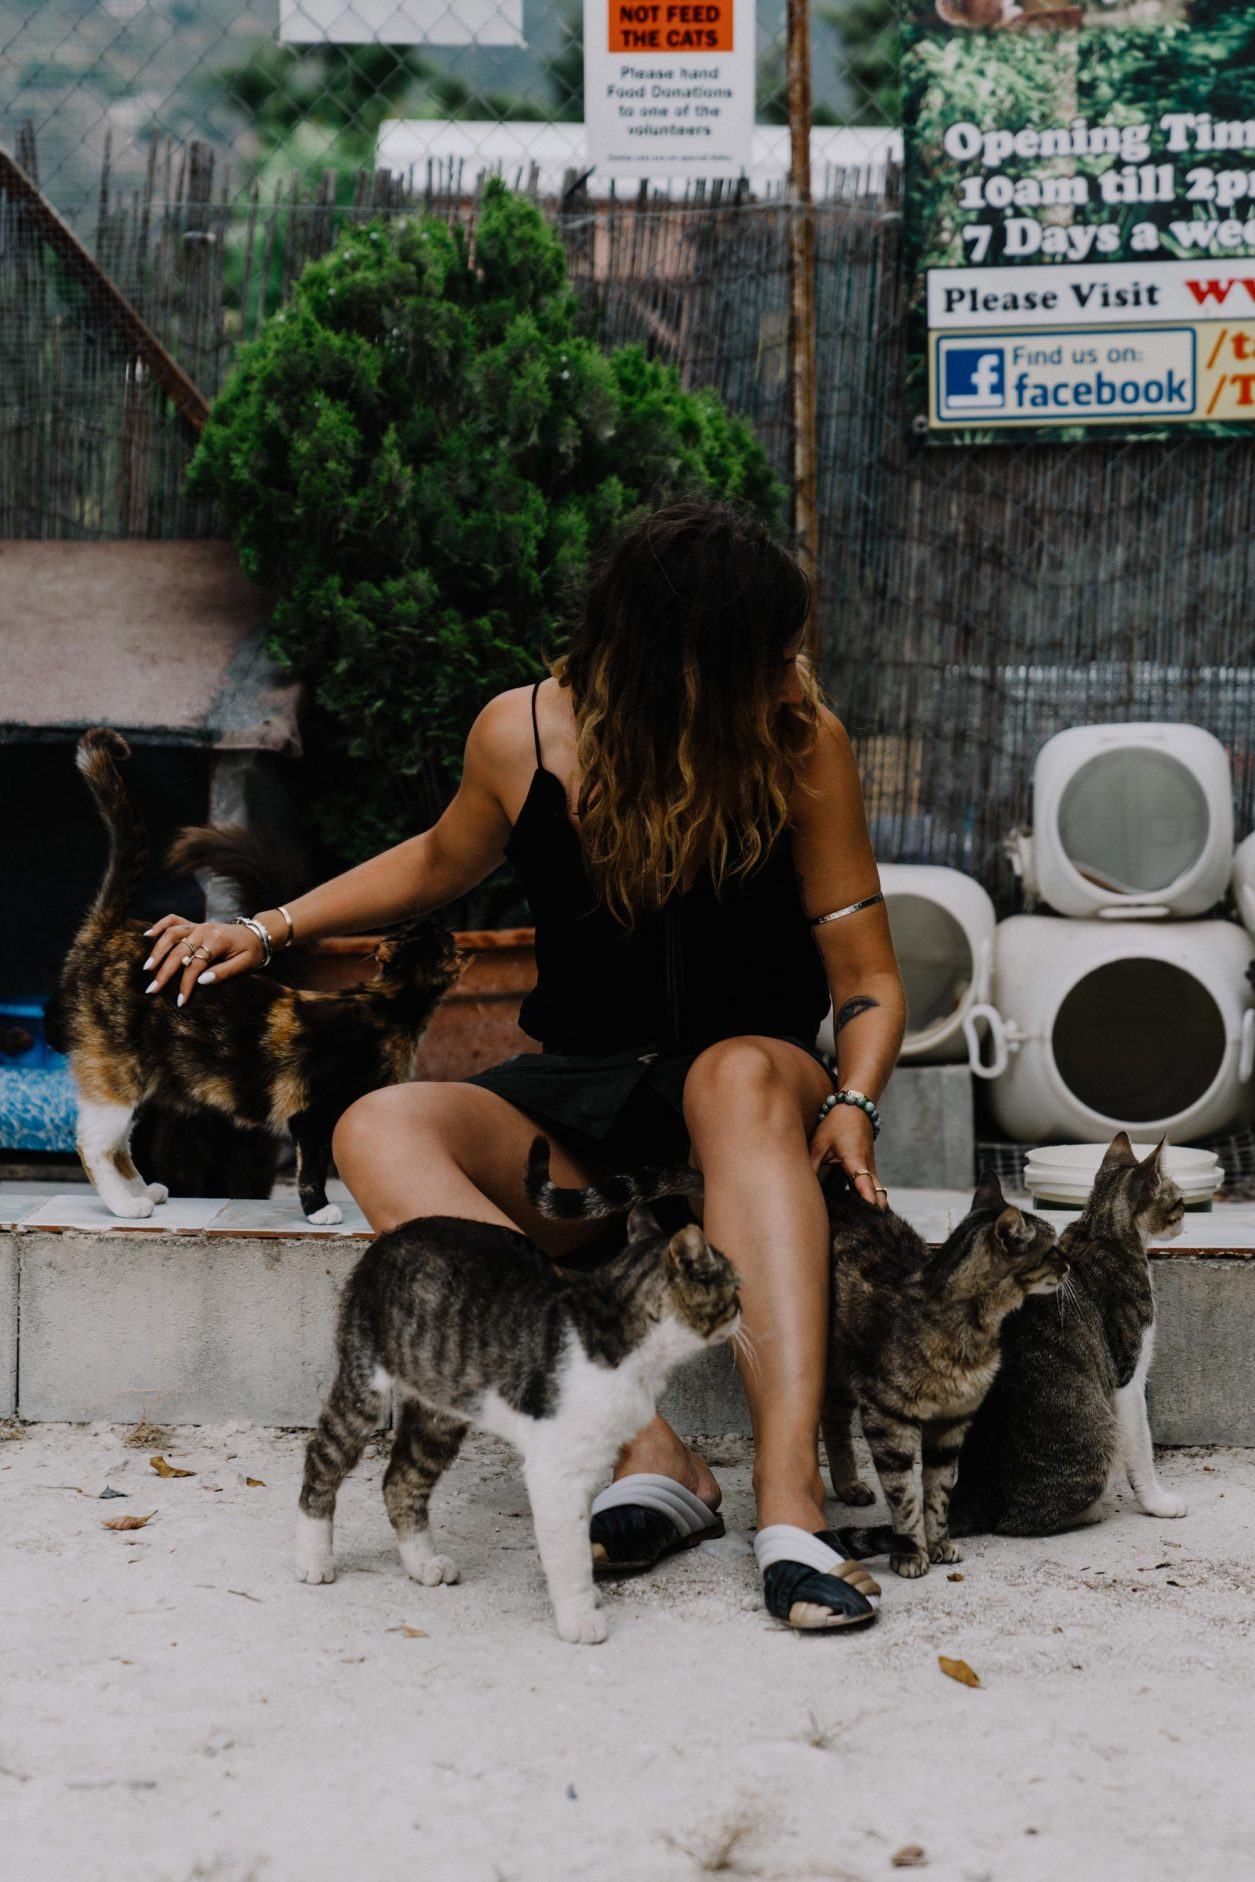 Travel tips, fashion blogger traveling, Turkey, Cyprus summer trip. Old city, architecture, cat farm